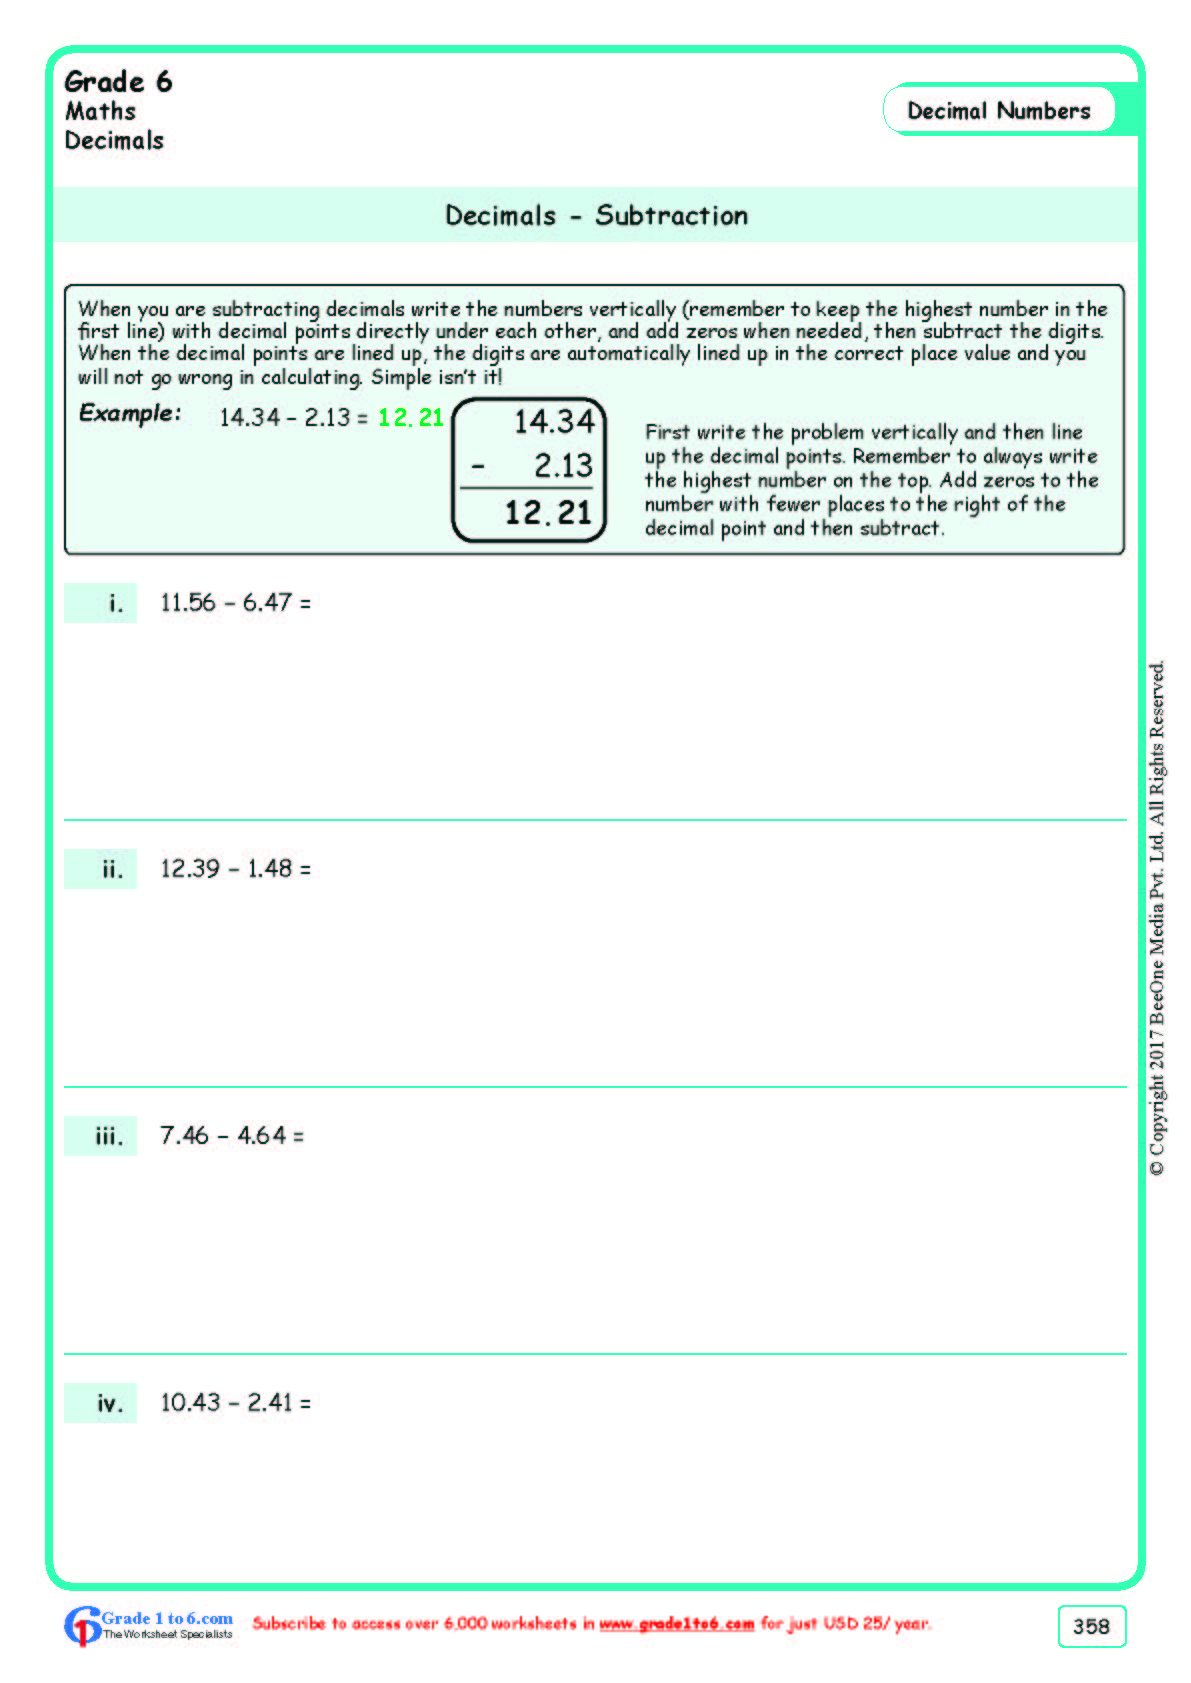 Worksheet Grade 6 Math Desimals